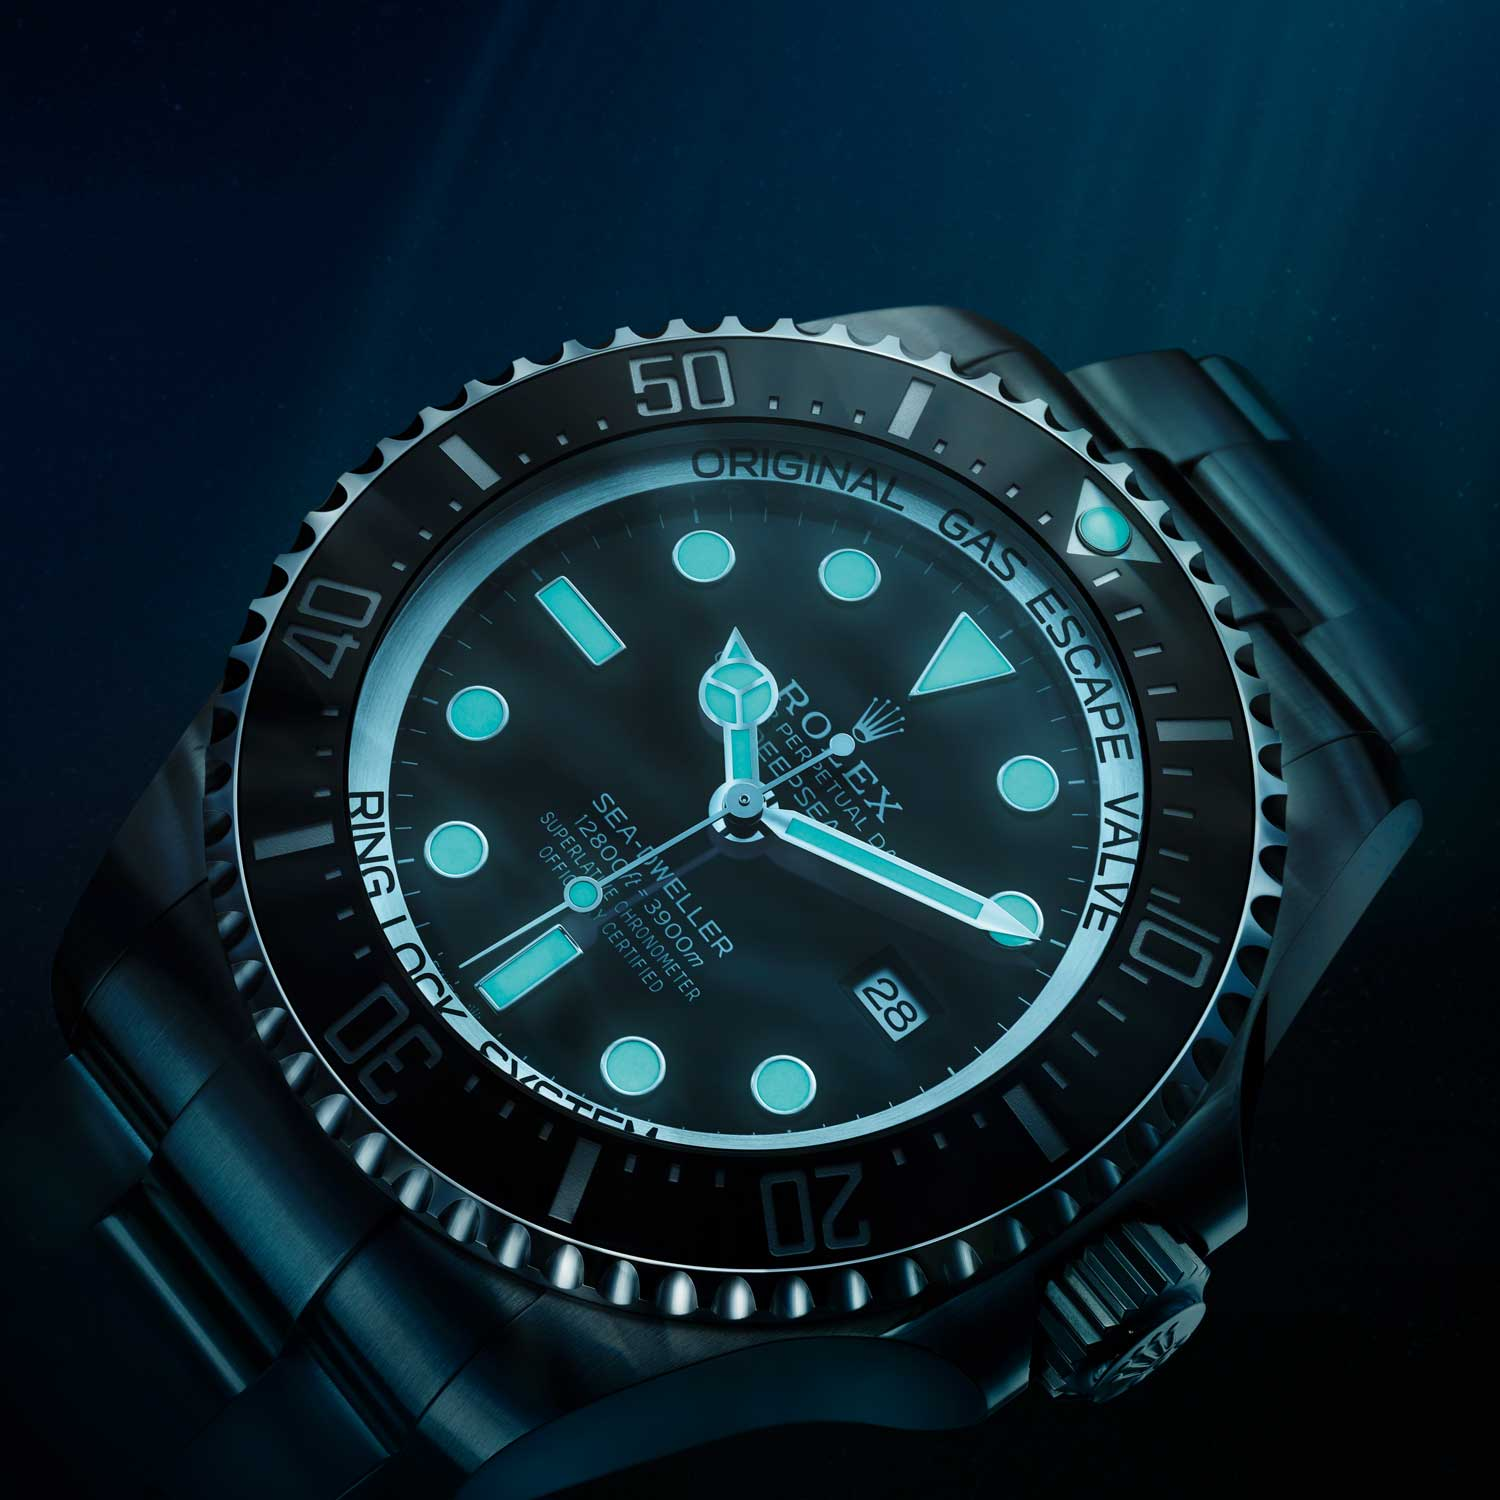 In 2008, Rolex launched the Sea-Dweller DEEPSEA ref. 116660, which featured Chromalight as Rolex's choice of lume material for the first time; Chromalight stands apart from the industry standard, SuperLuminova with its blue glow as opposed to the latter's green glow